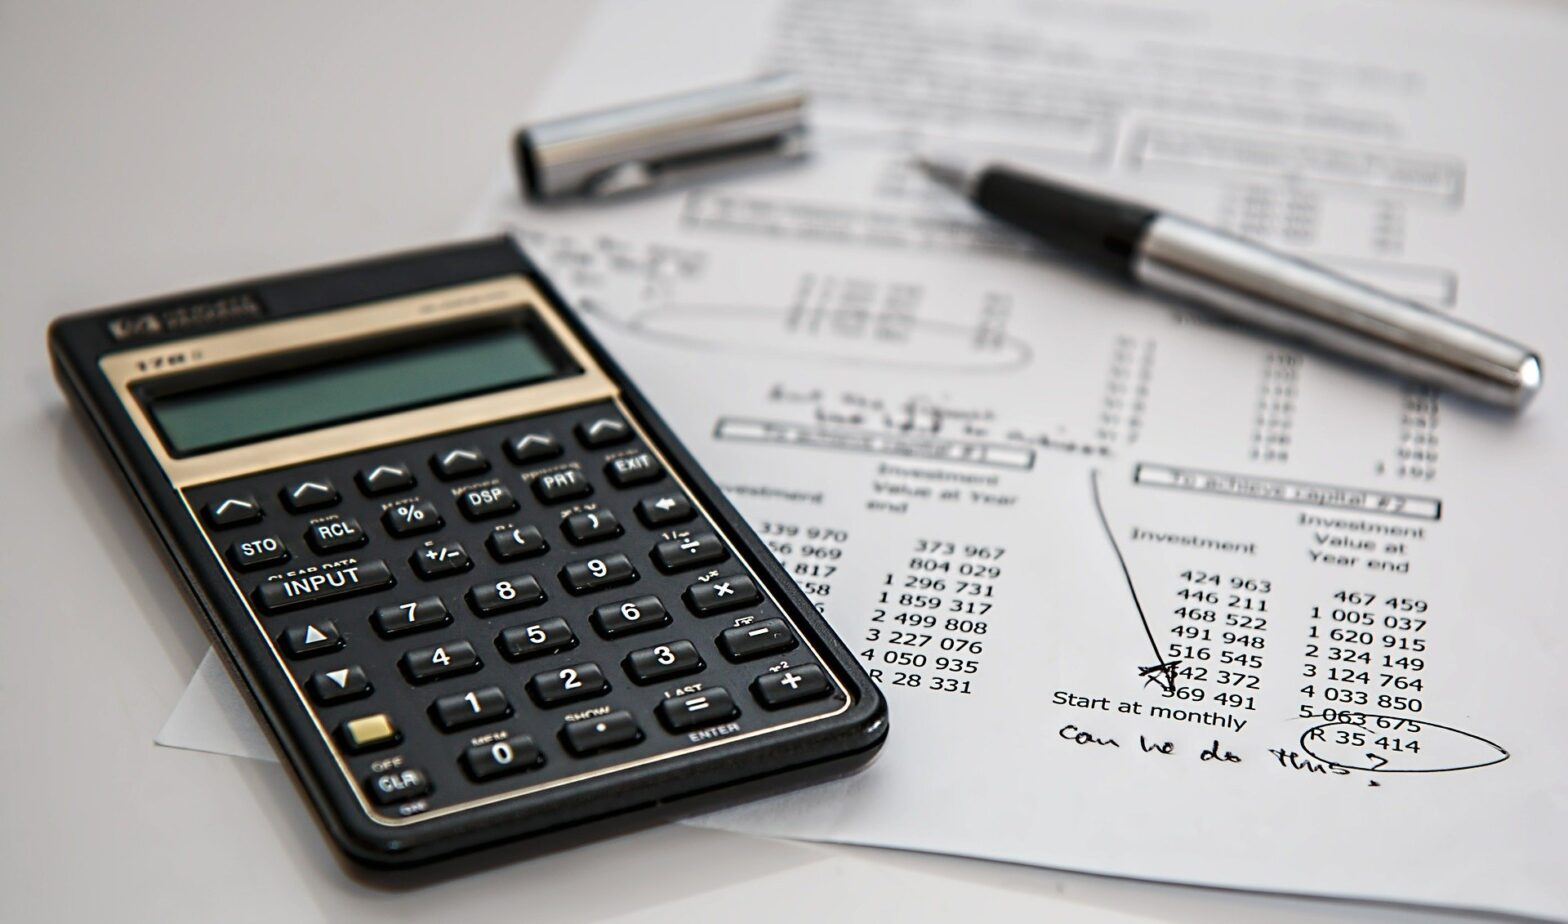 Calculating your investments